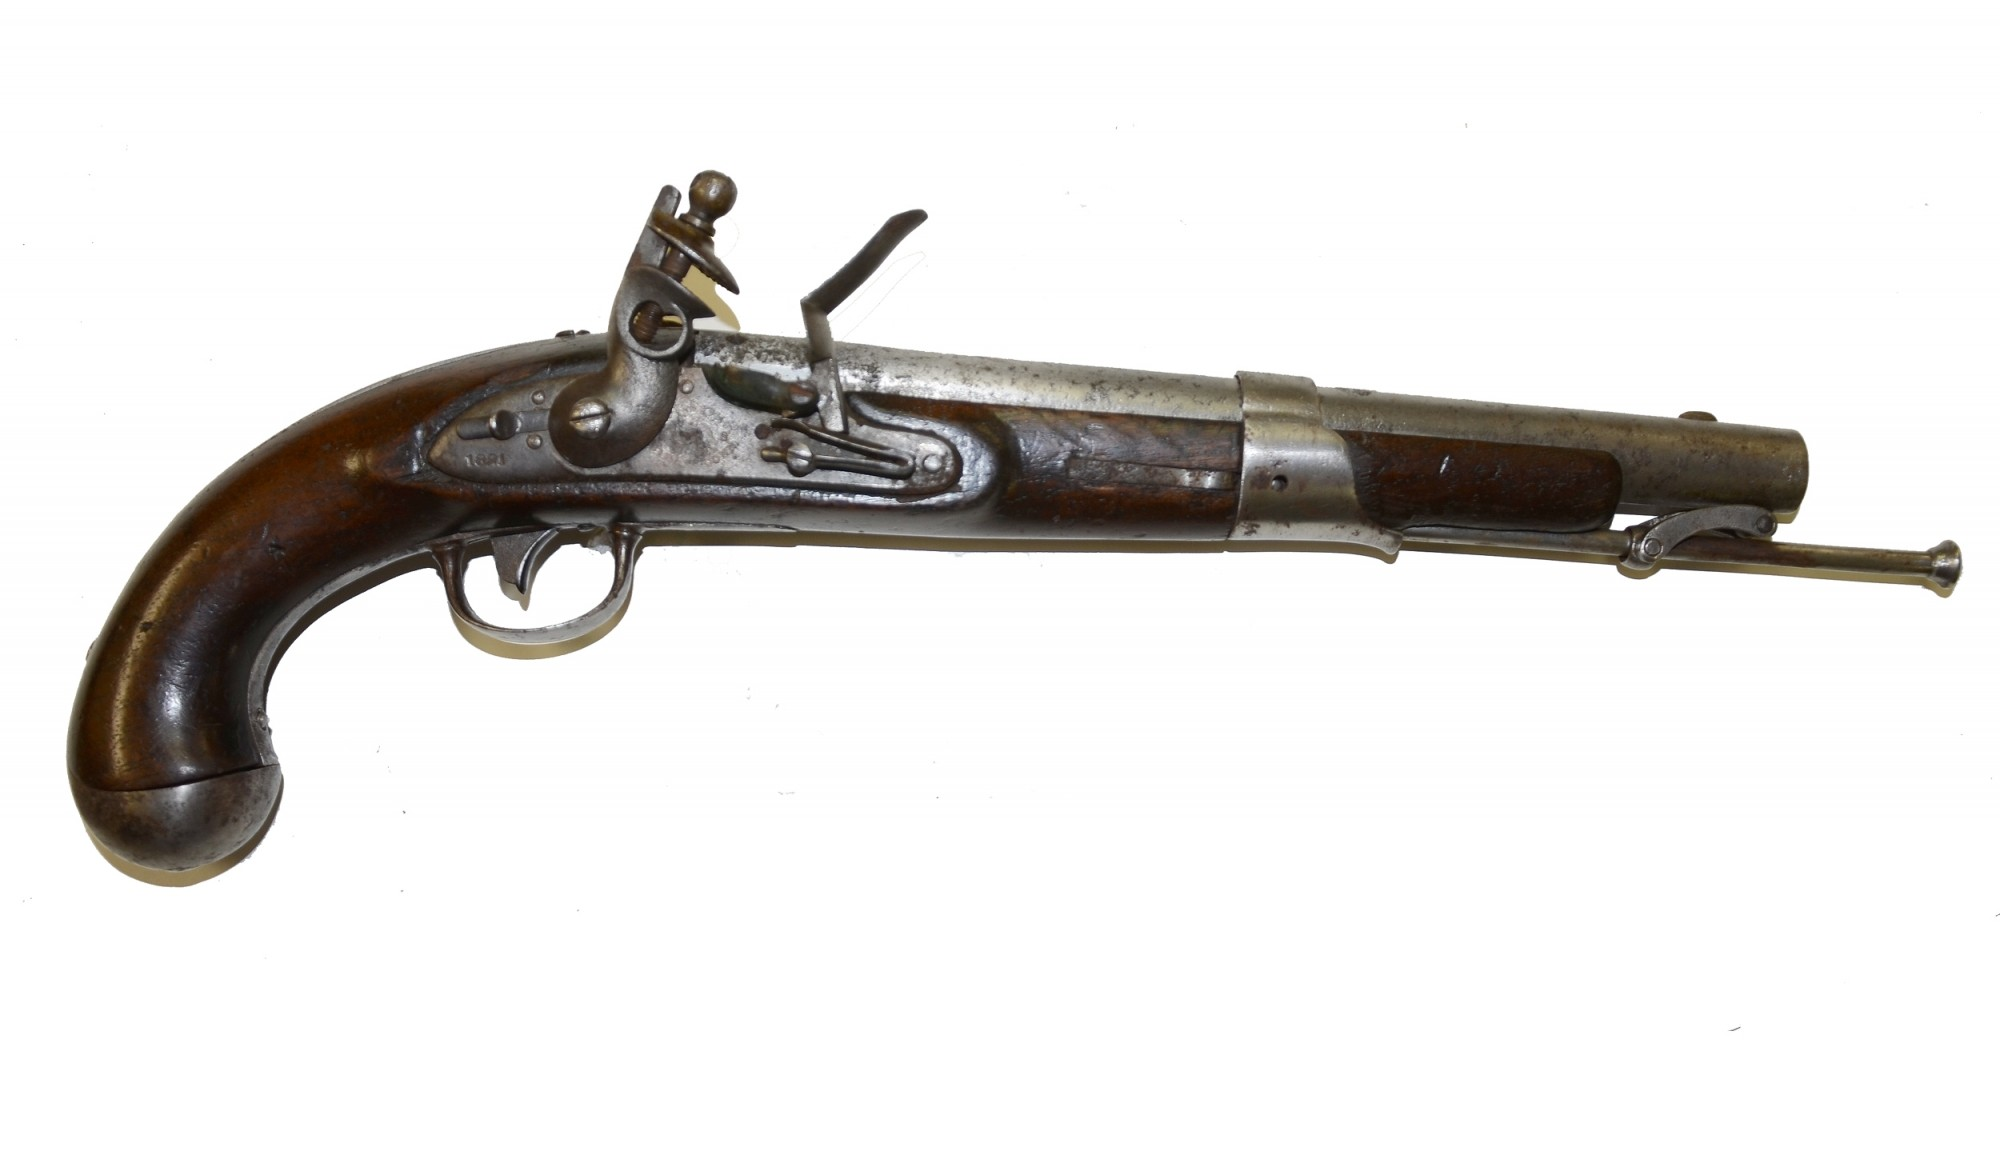 MODEL 1819 PISTOL BY SIMEON NORTH